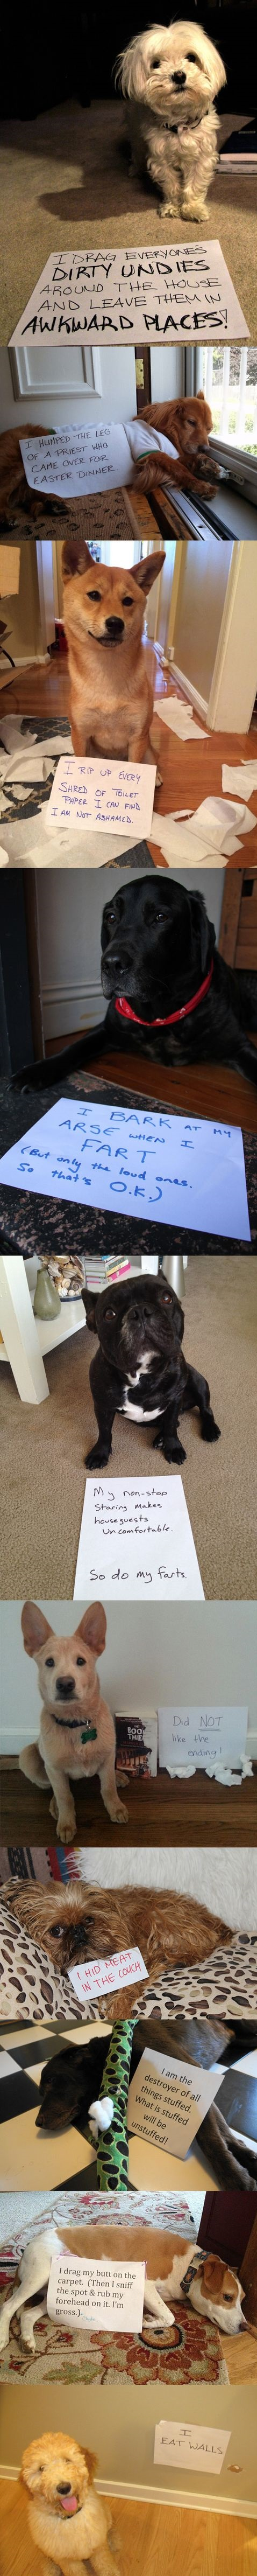 funny-picture-dog-shaming-compilation